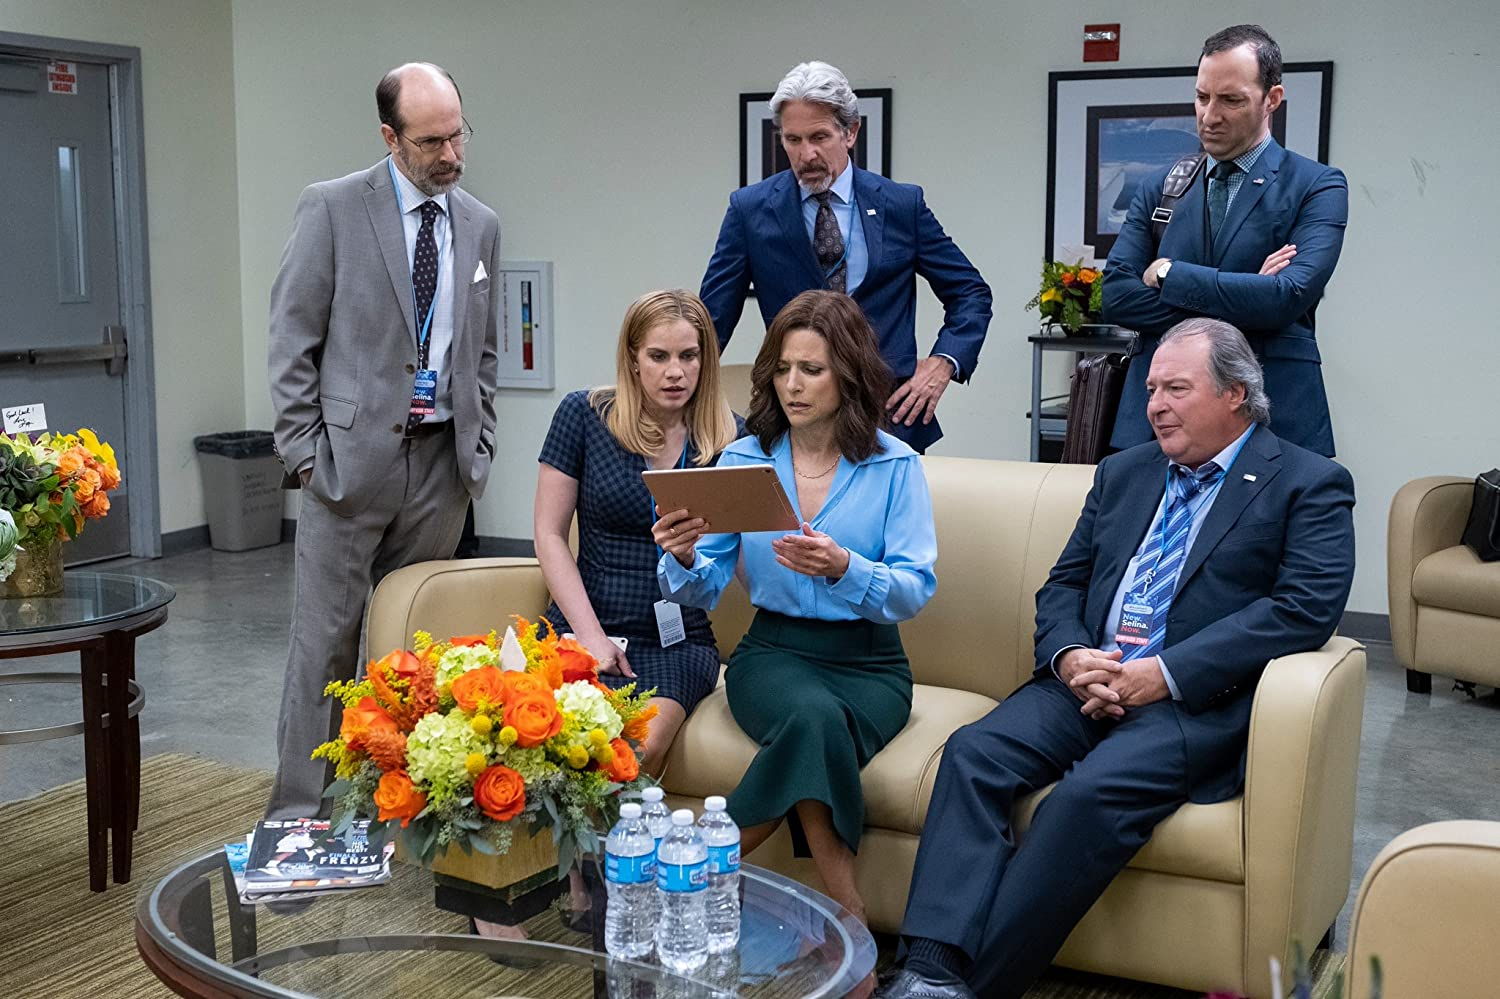 Julia Louis-Dreyfus, Anna Chlumsky, Gary Cole, Kevin Dunn, and Tony Hale in Veep (2012)